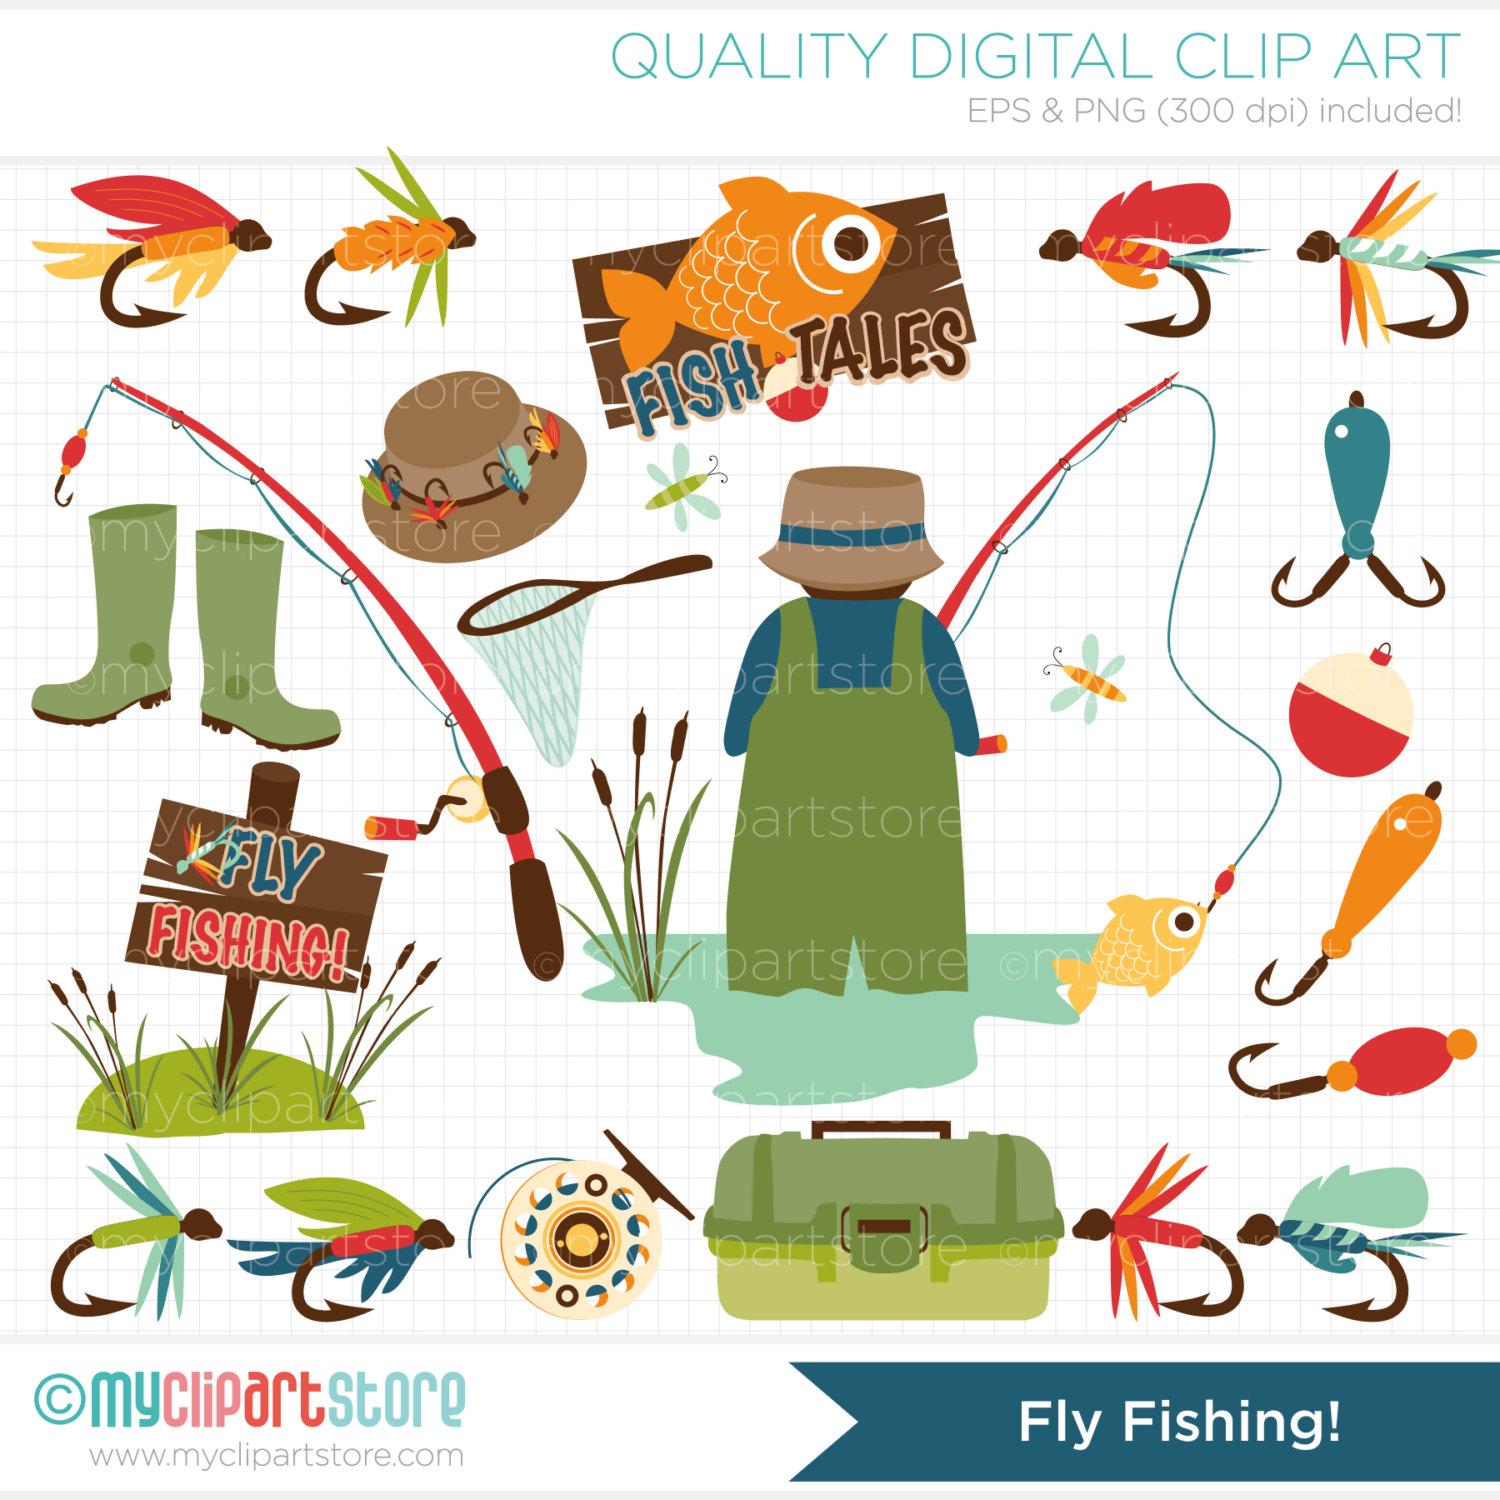 Fisherman clipart gone fishing #3